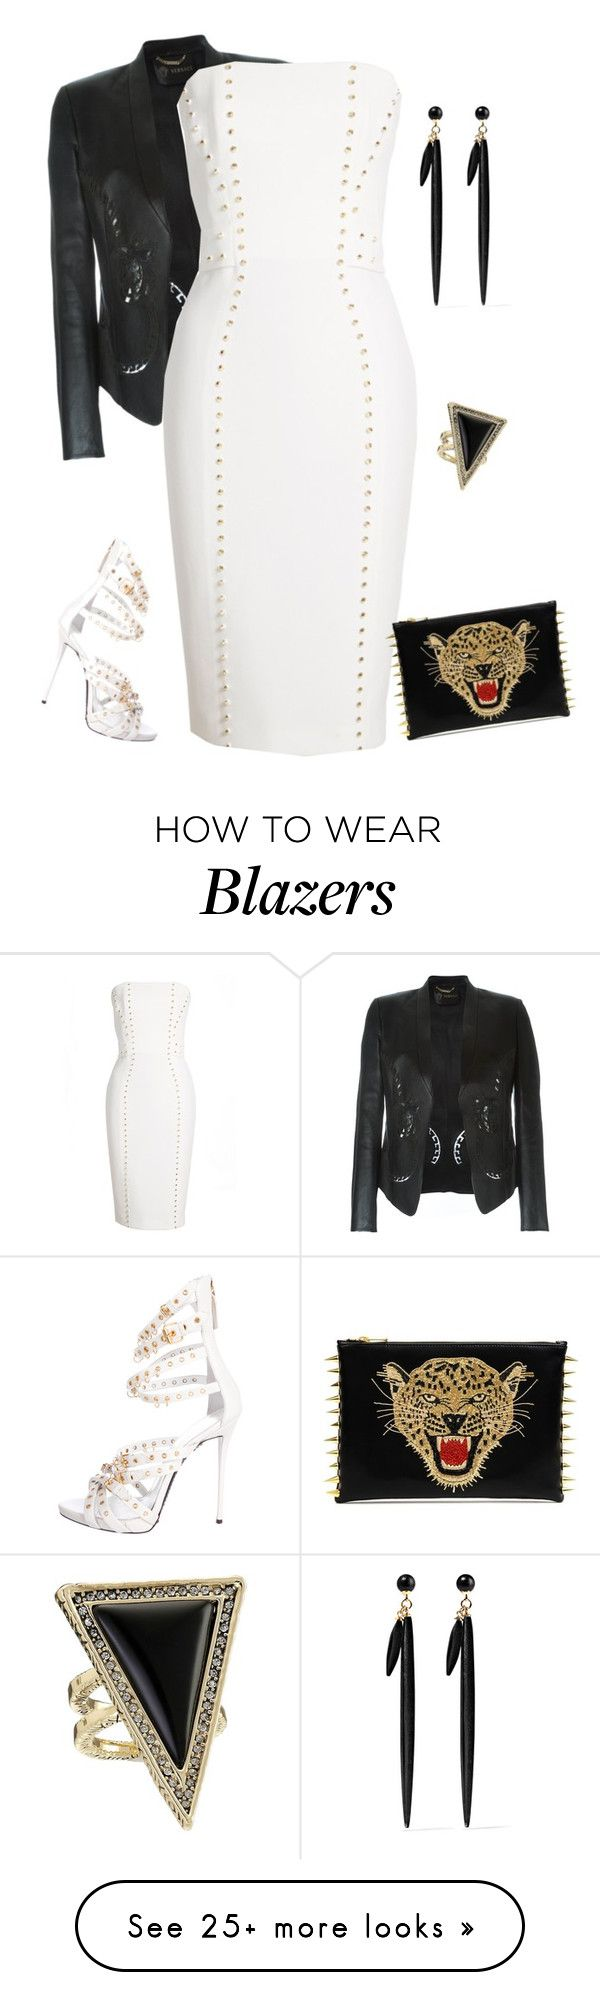 """outfit3804"" by natalyag on Polyvore featuring Versace, Giuseppe Zanotti, Isabel Marant and House of Harlow 1960"